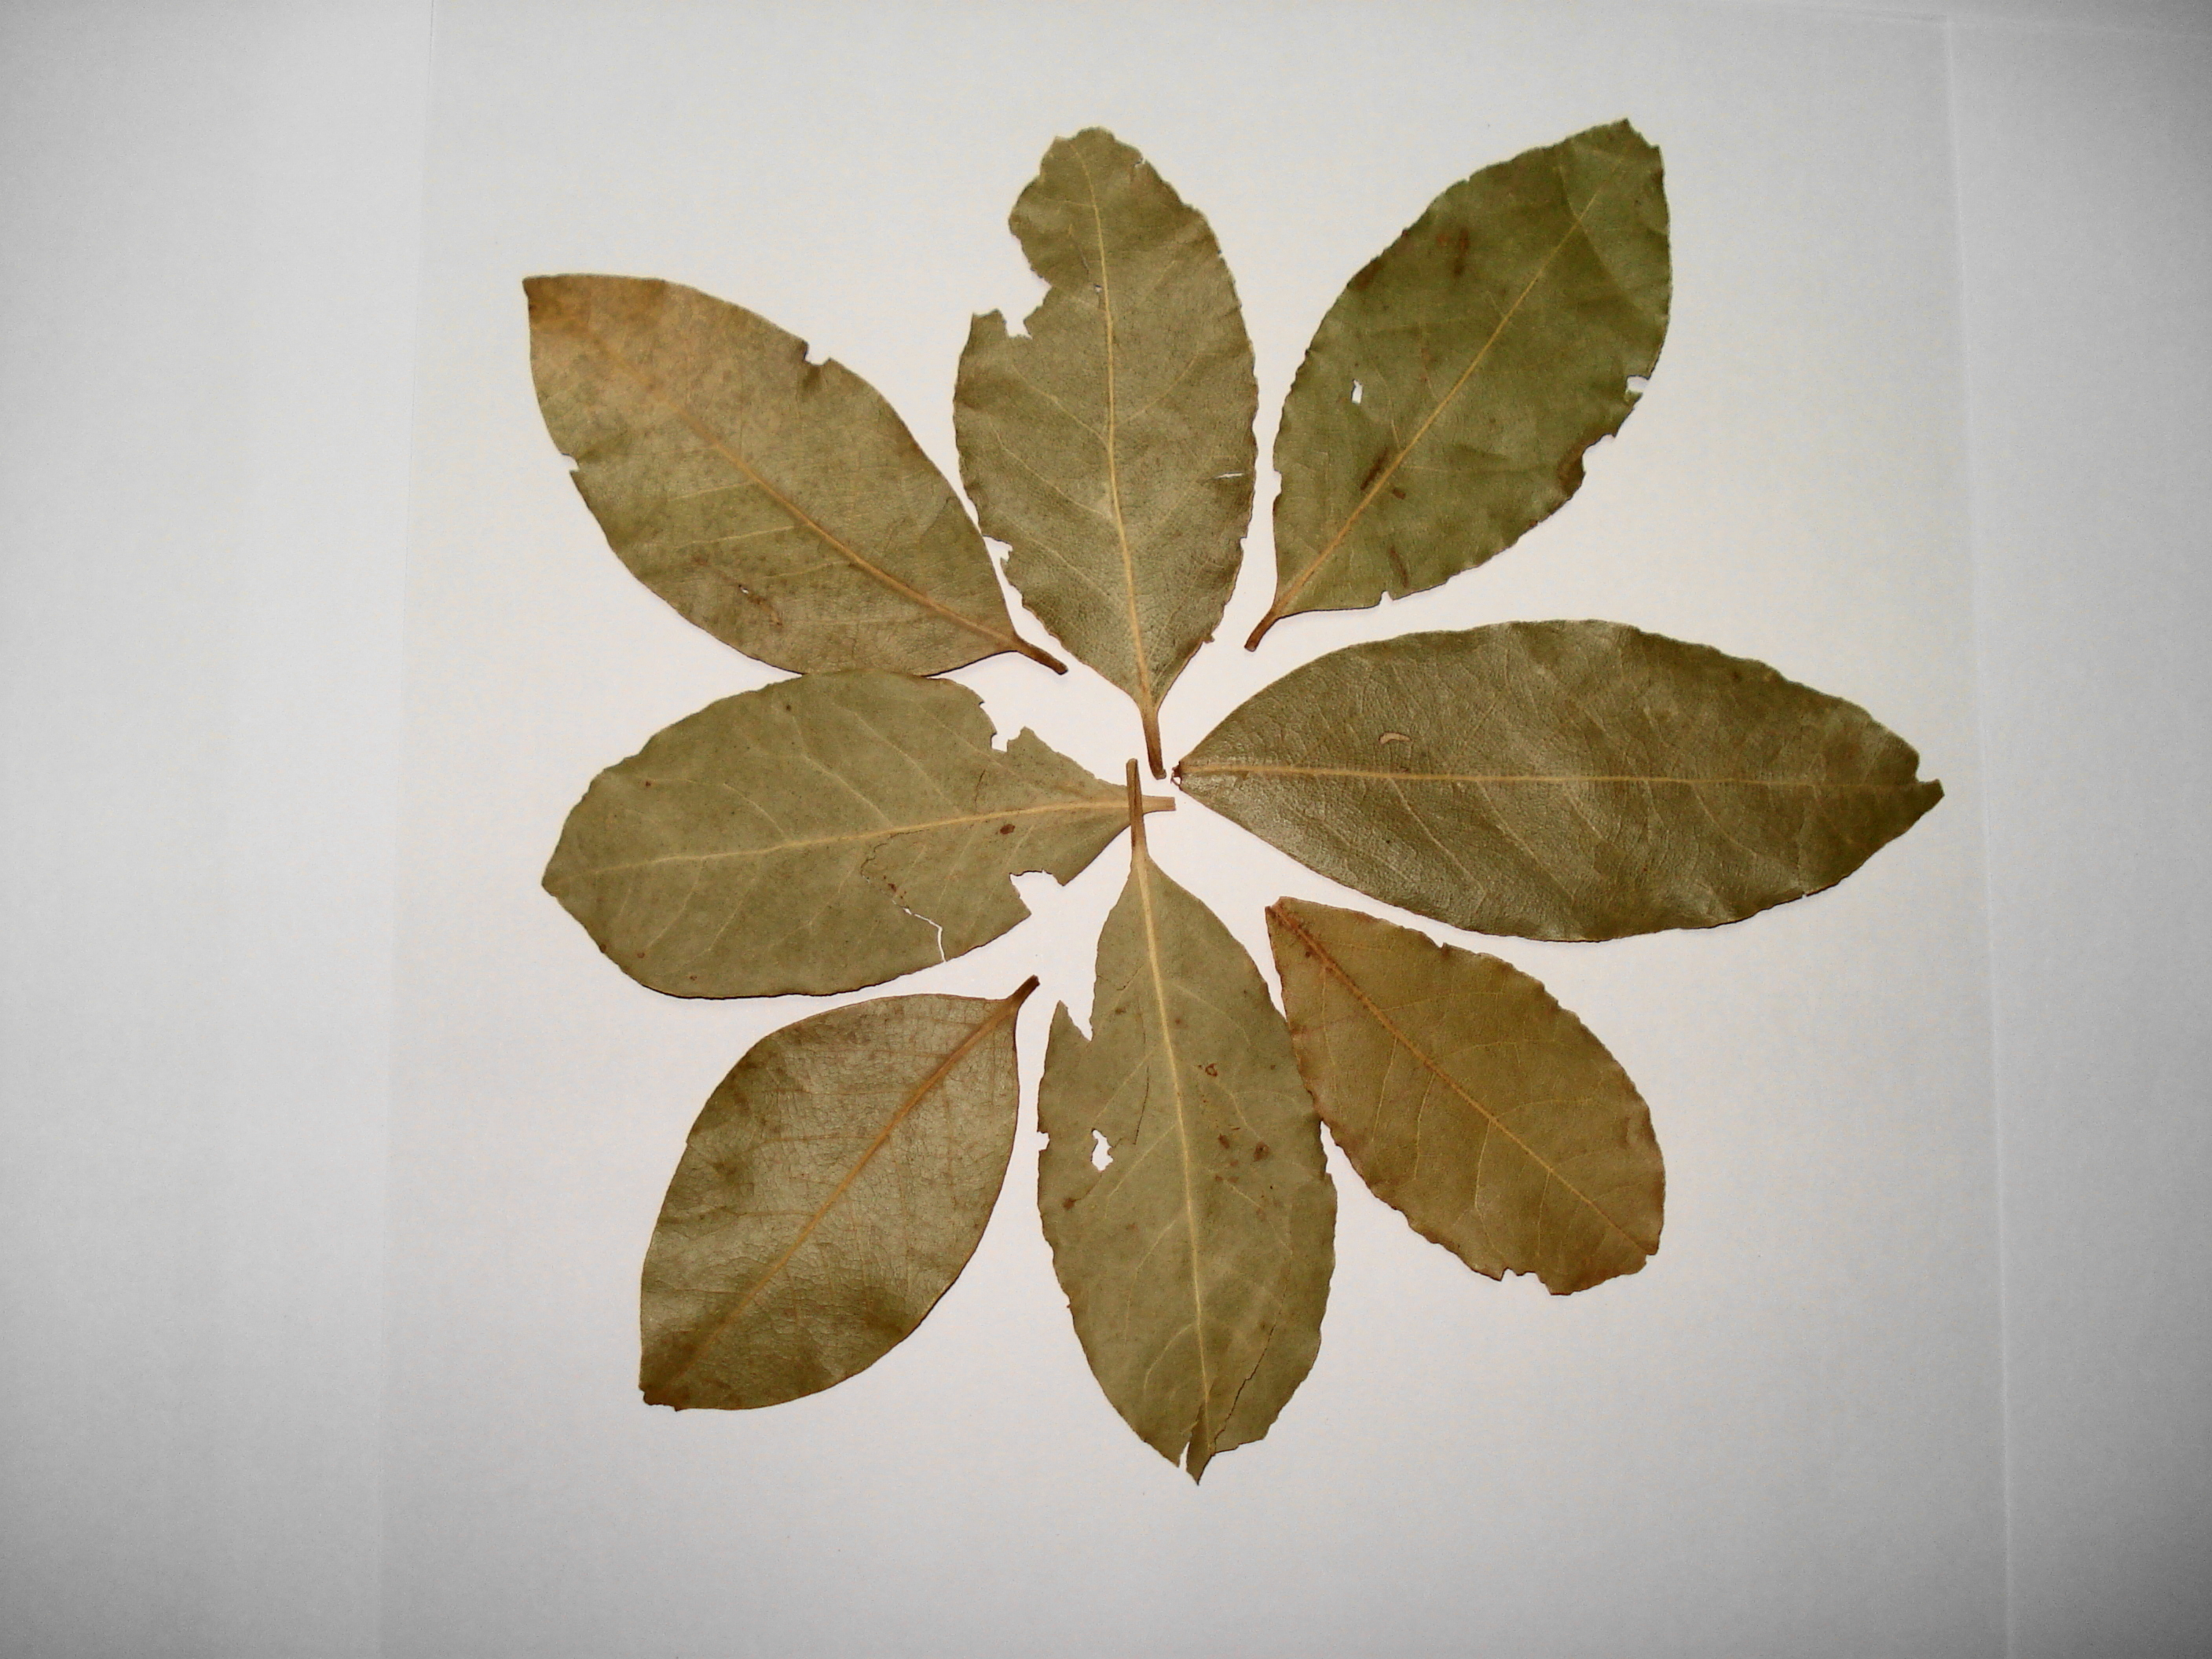 Bay leaf - Wikipedia